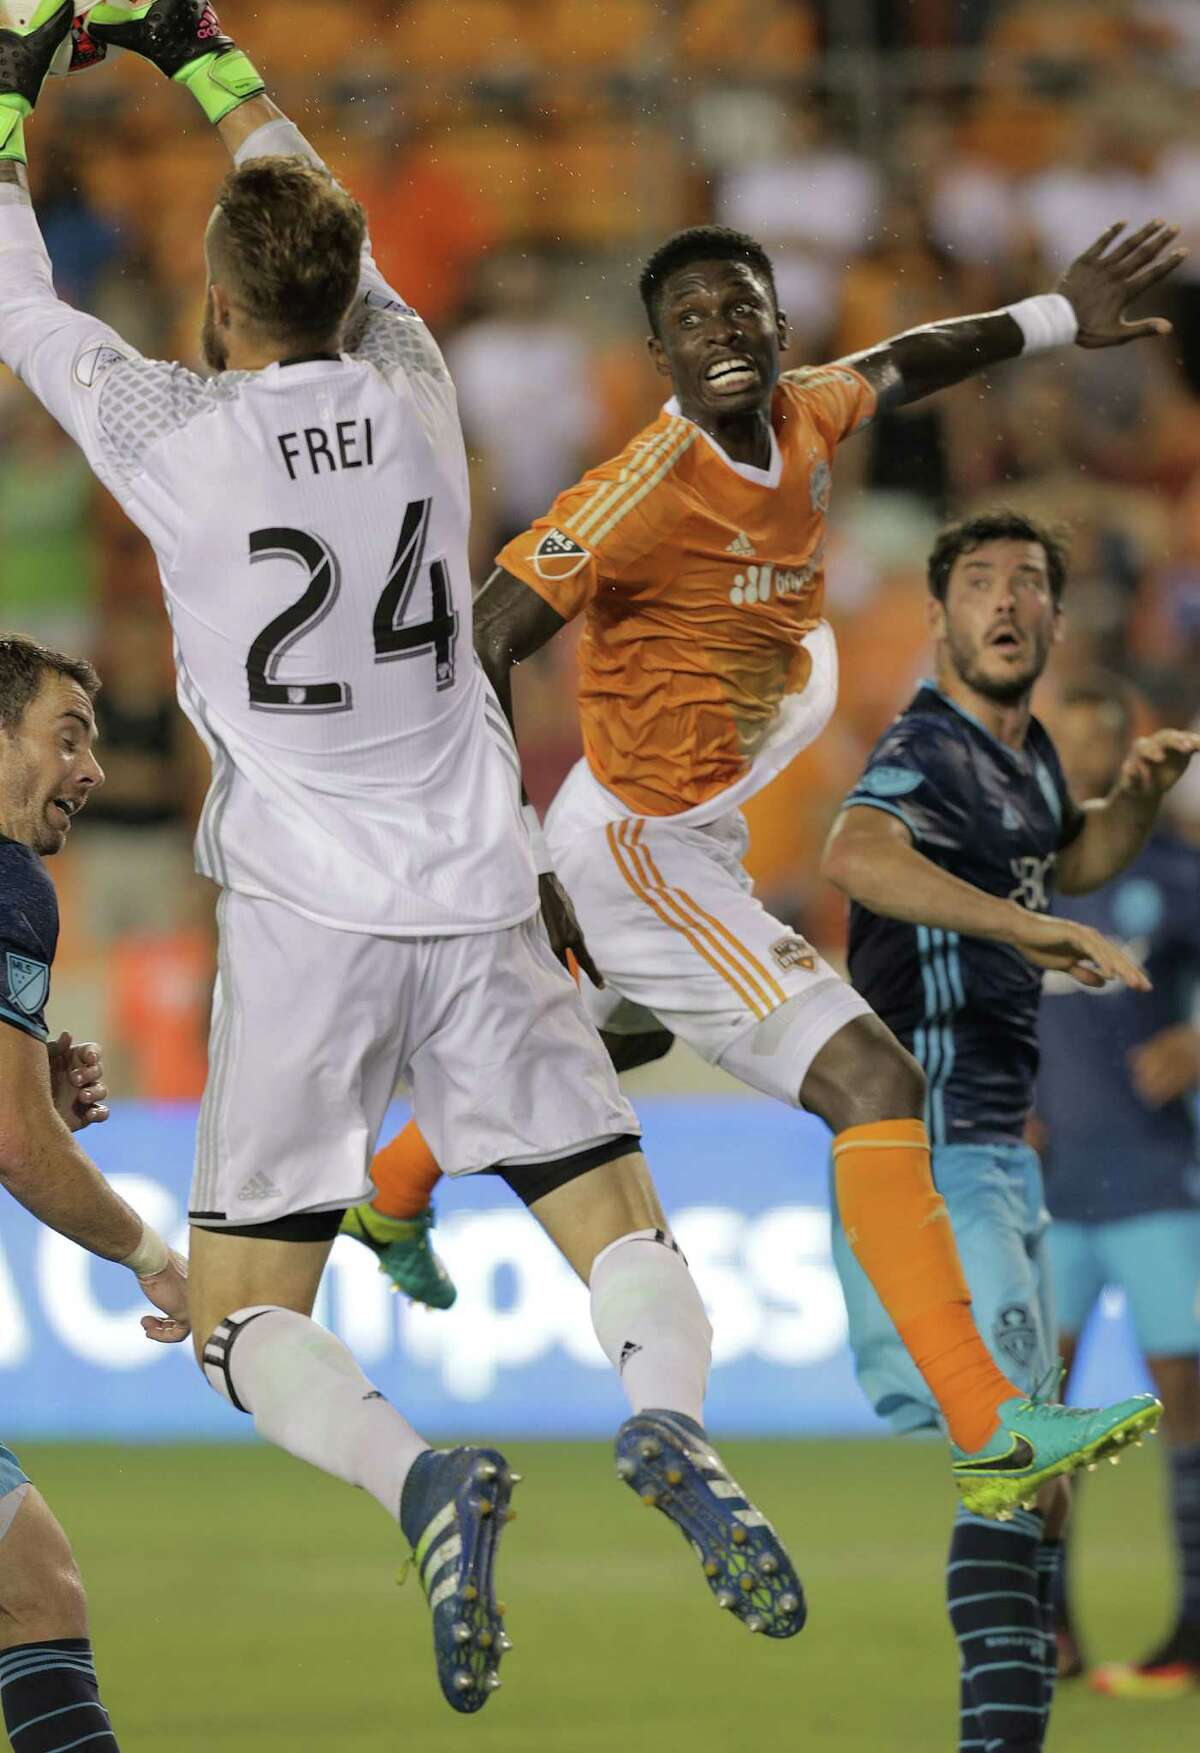 Seattle Sounders goalkeeper Stefan Frei (24) makes a save from Houston Dynamo midfielder Ricardo Clark (13) during MLS game action on Wednesday, Aug. 24, 2016, in Houston. The teams tied 1-1.